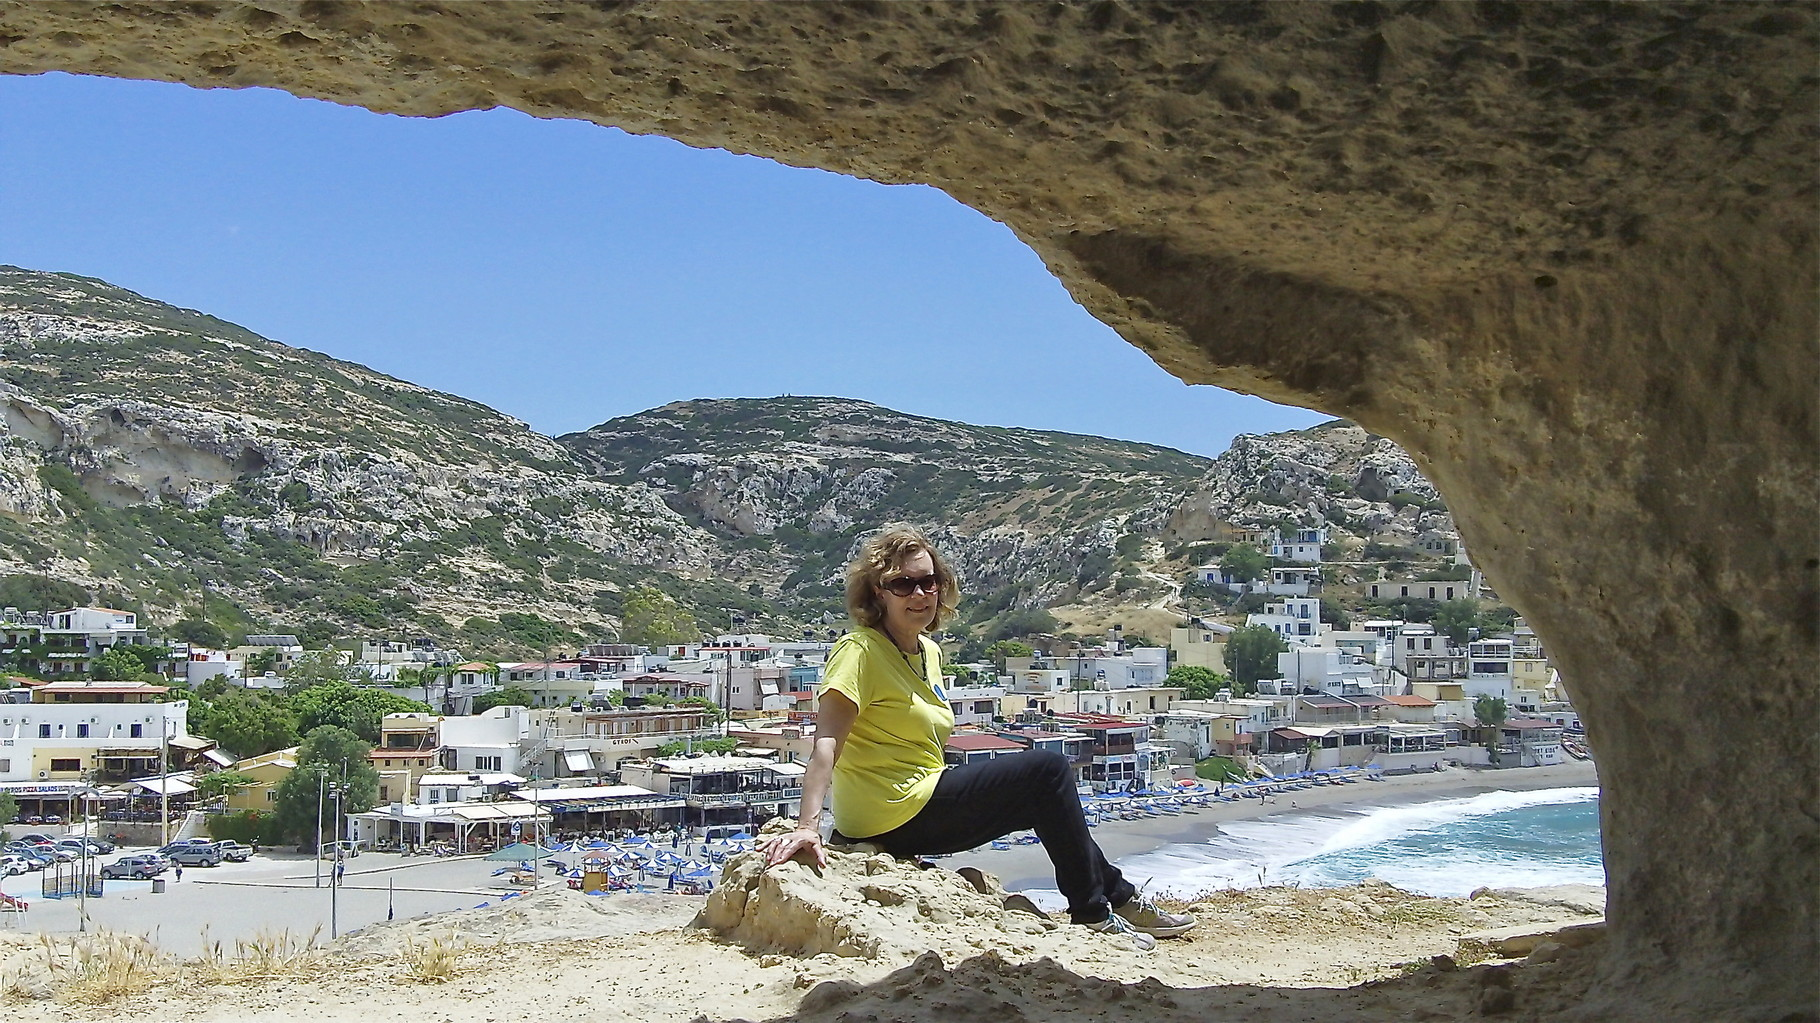 Lorraine in the caves, caves used as Roman burial sites near the beach